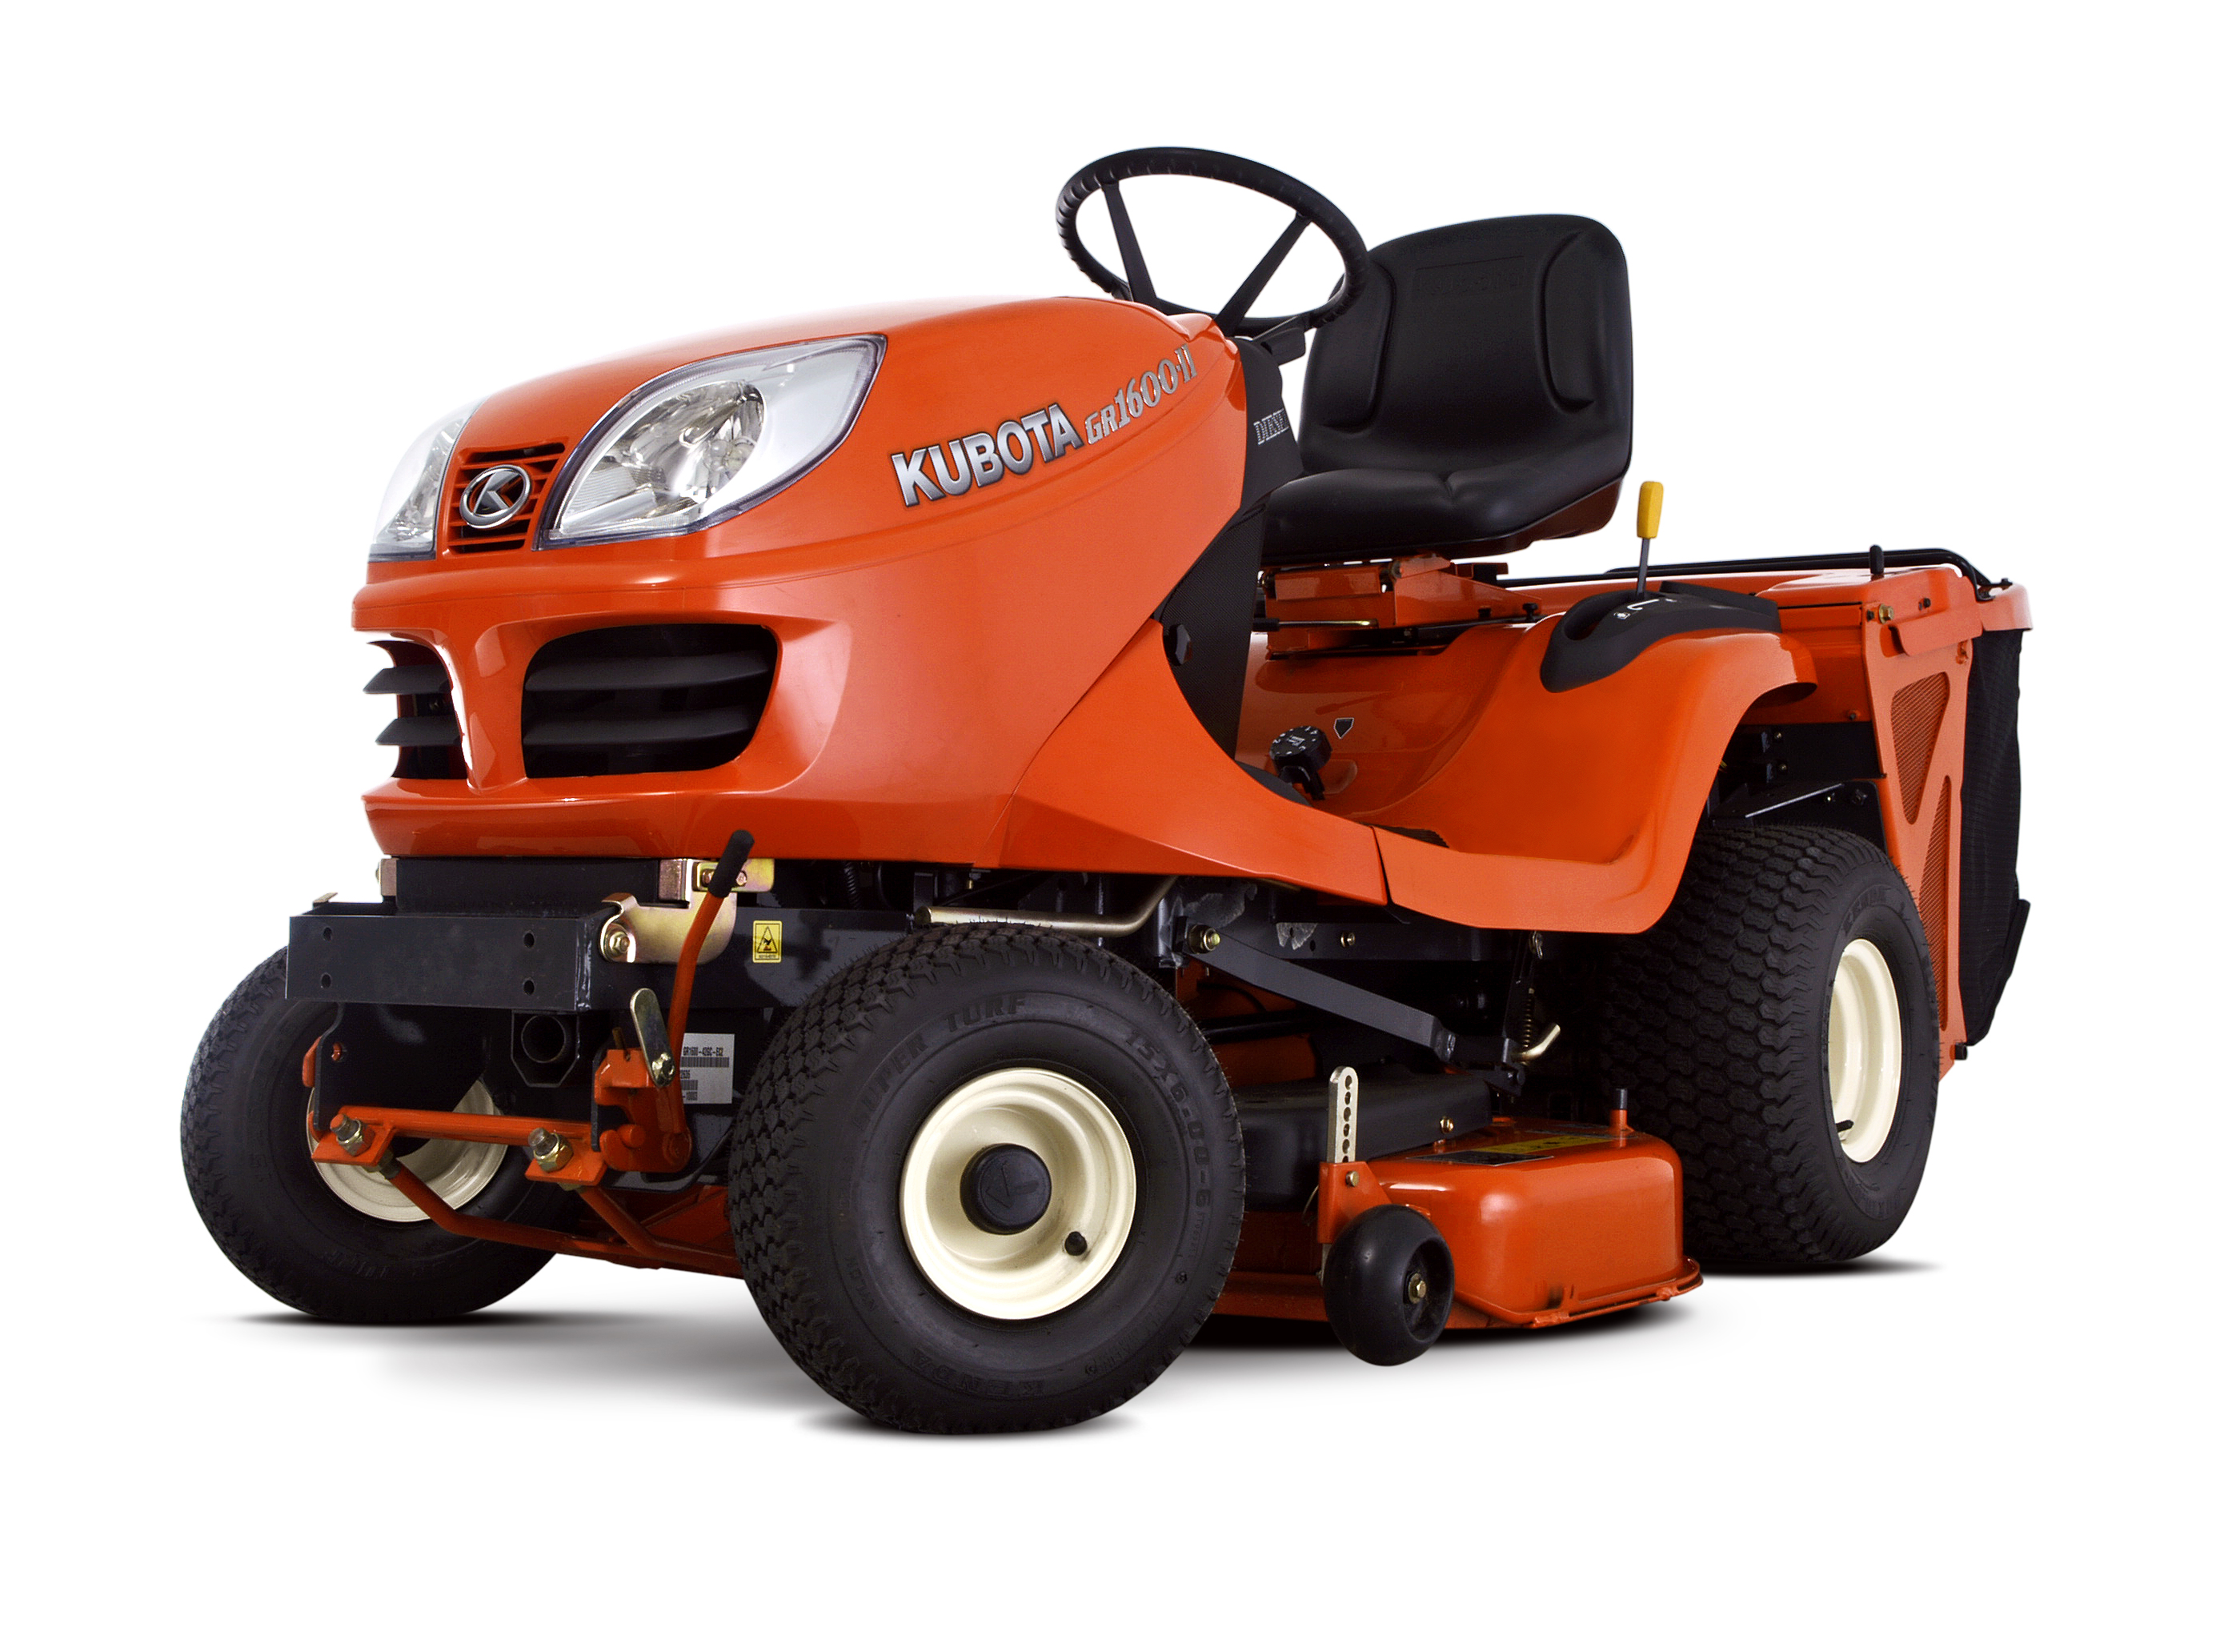 GR1600 II Ride On Diesel Mower